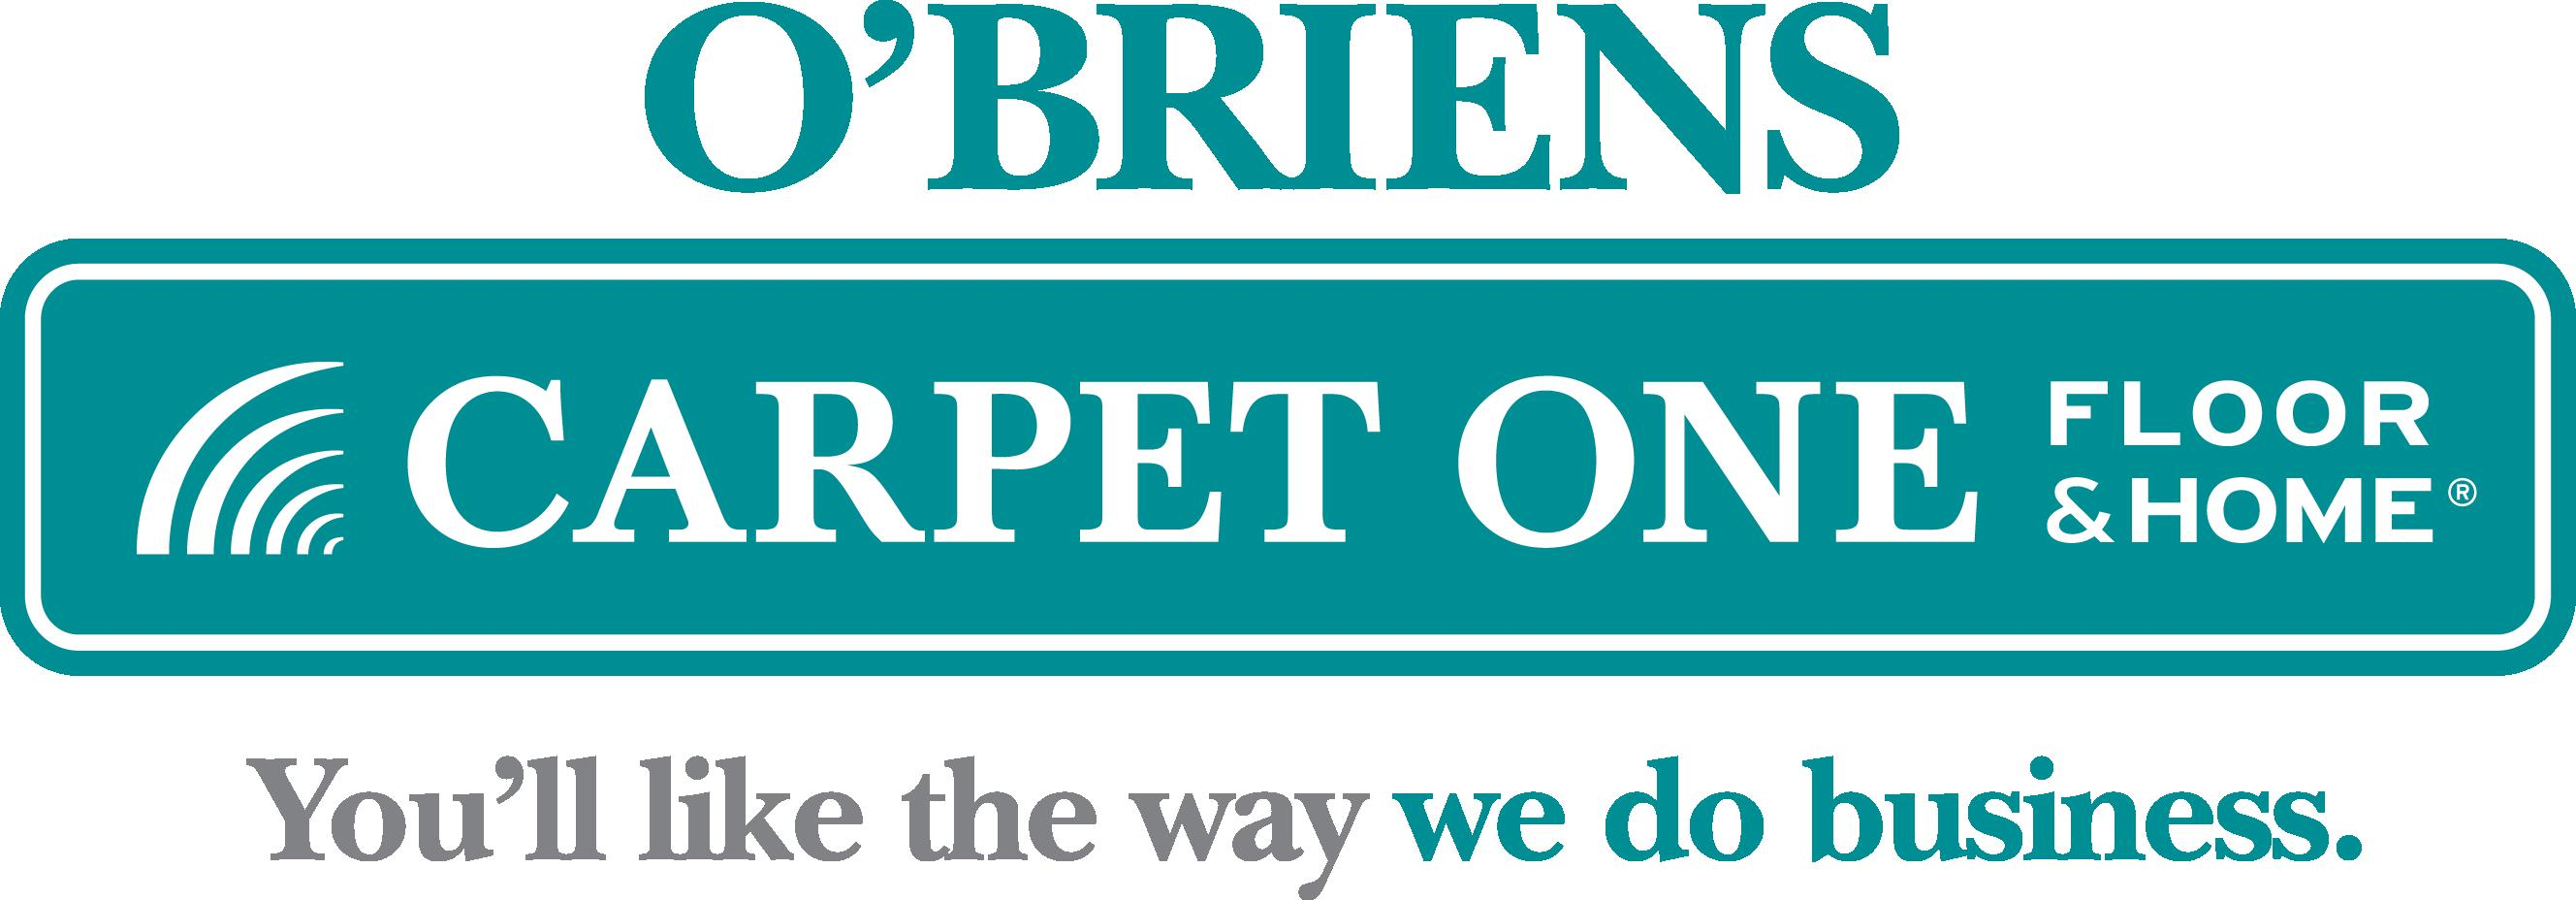 O'Briens Carpet One